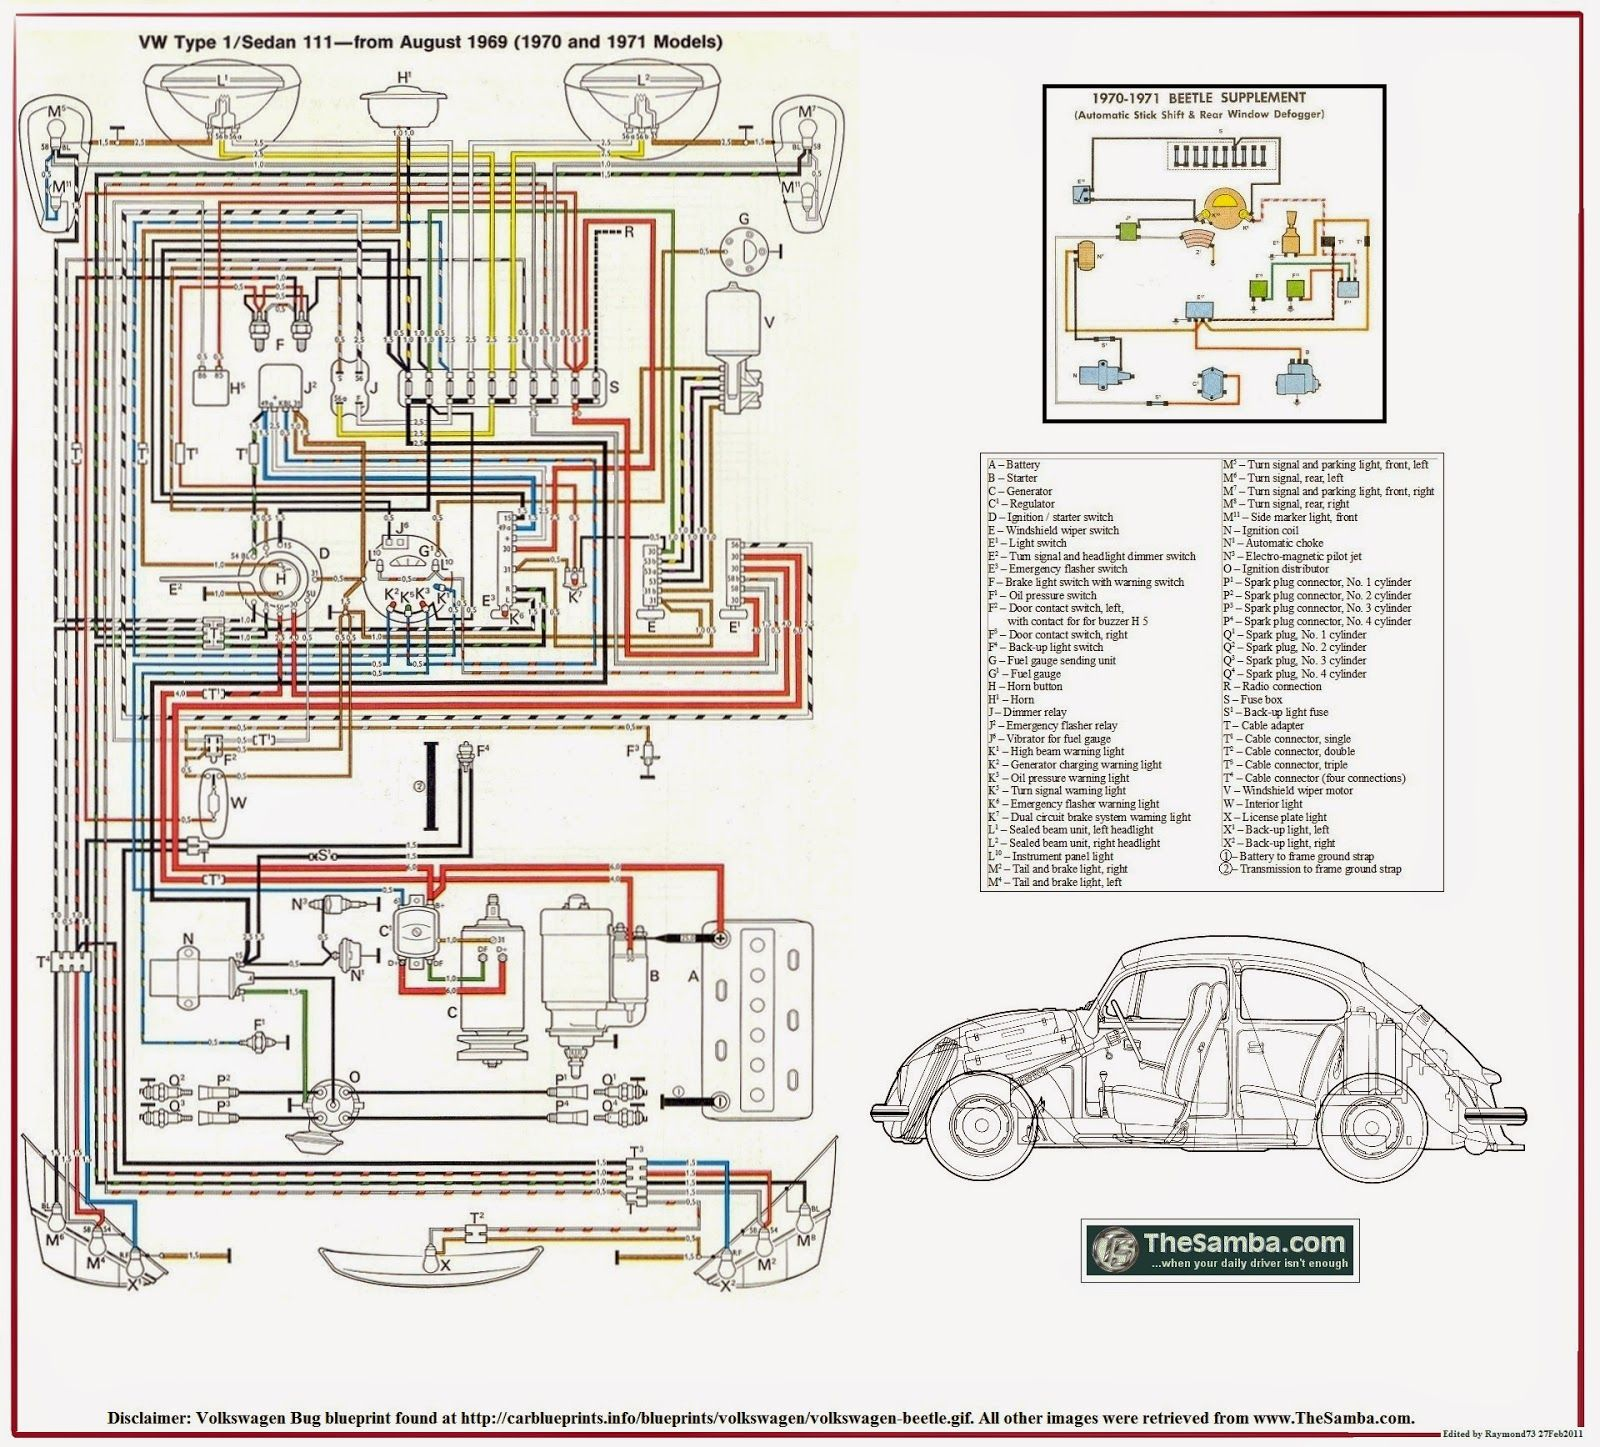 c42f7e50c6cd2df691326f8c1e5c6e97 urbi et orbi my bucket list journals volkswagen (vw) beetle 2001 vw beetle wiring diagram at mifinder.co